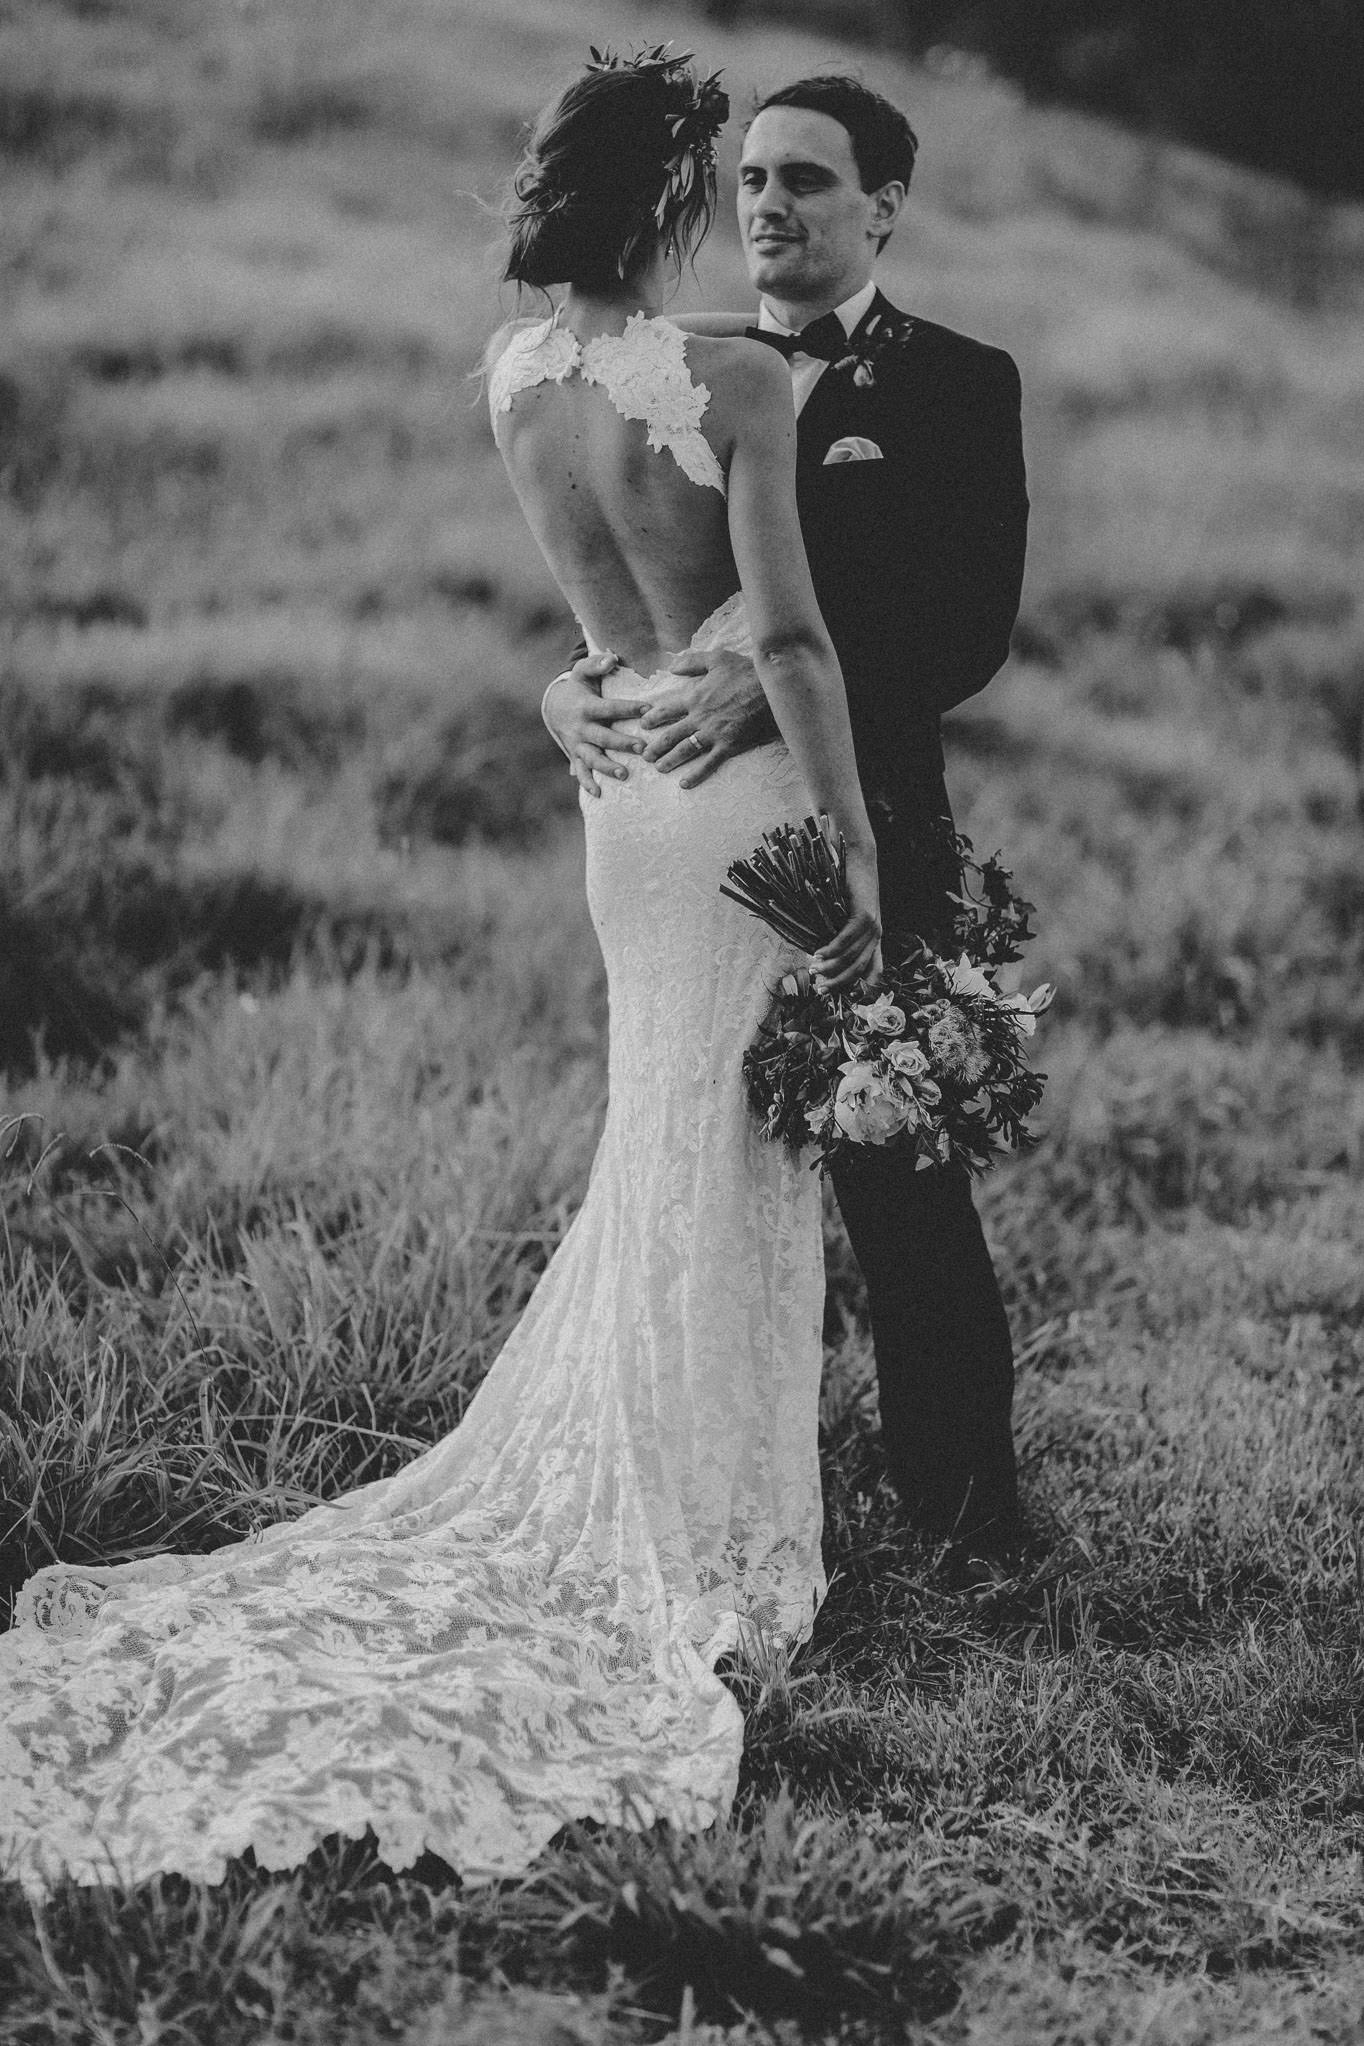 TocalHomestead_WeddingPhotography_LaurenAnnePhotography-1114.jpg